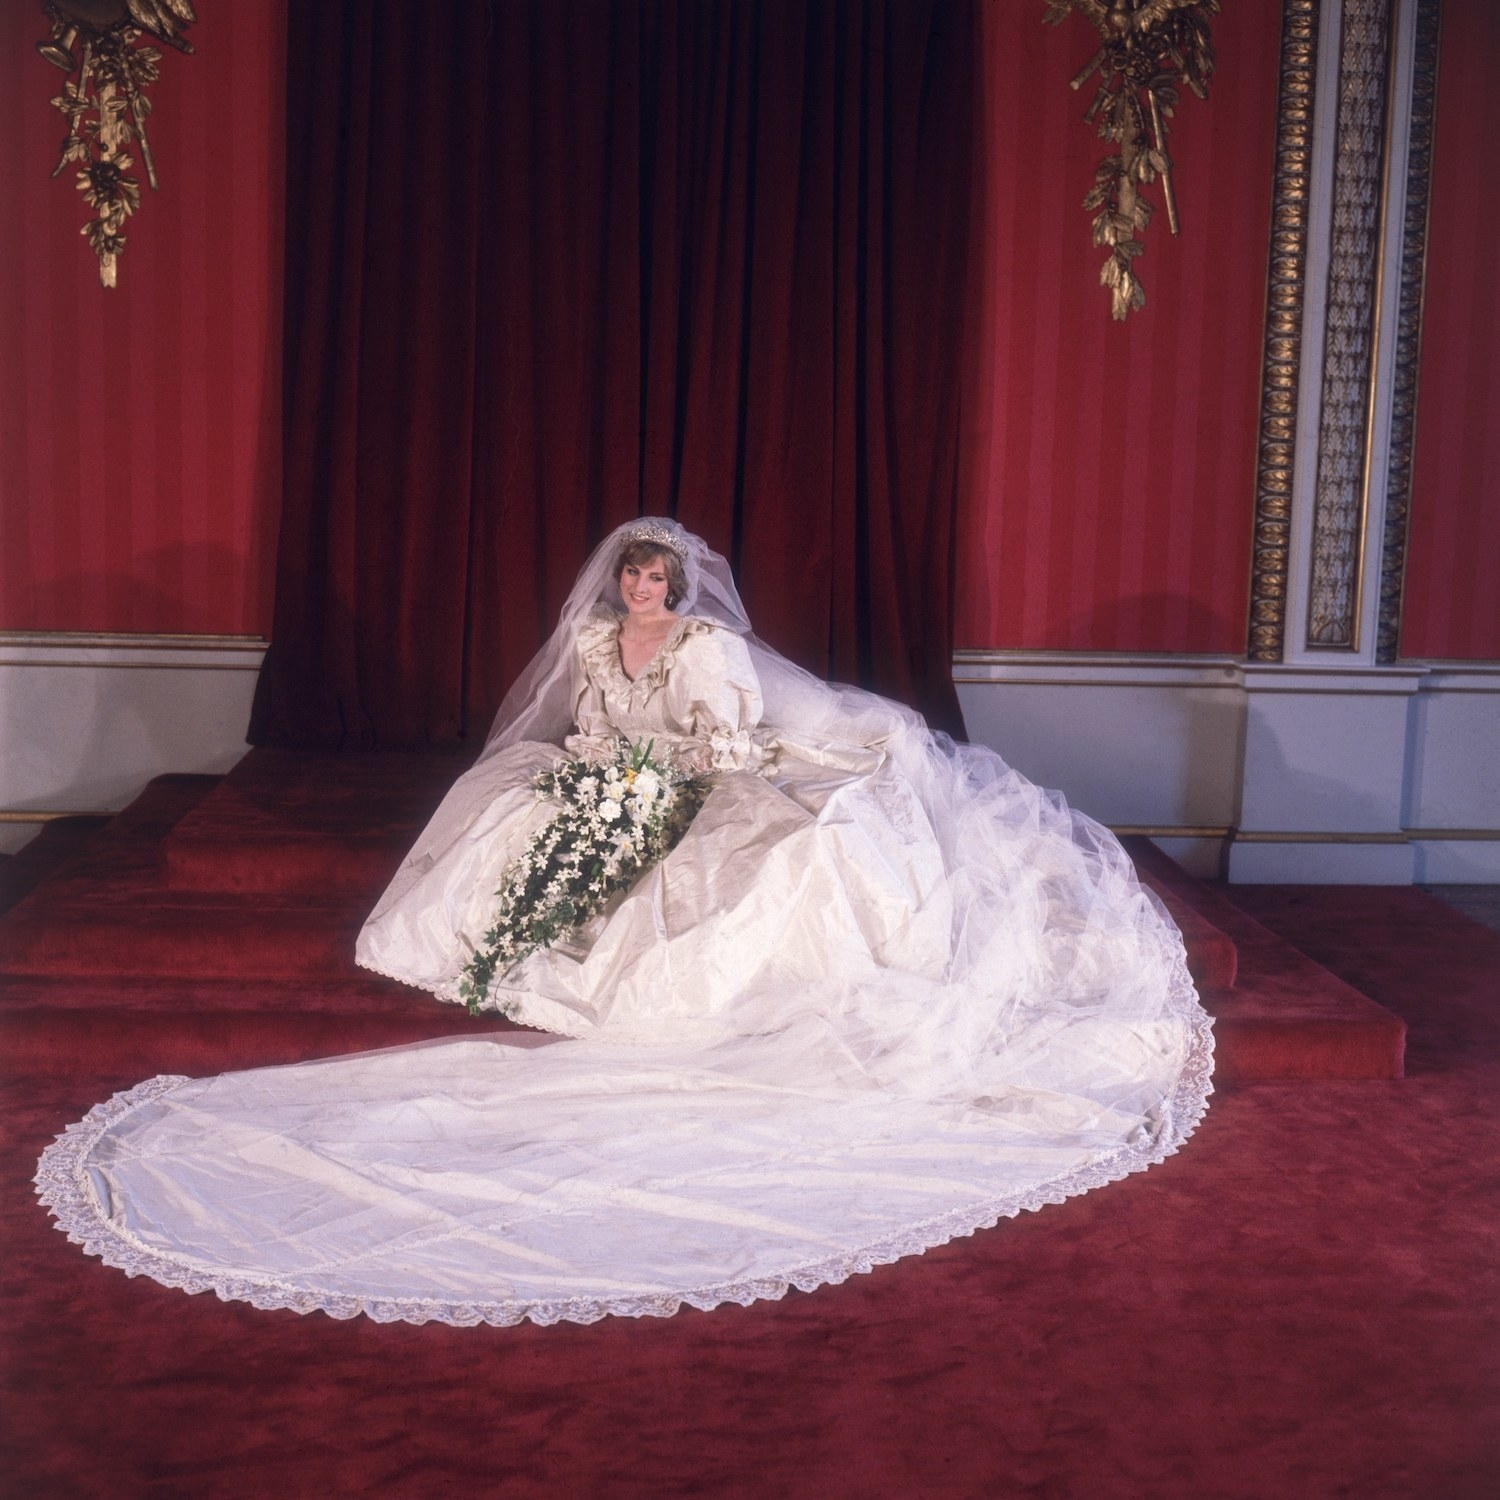 Formal portrait of Lady Diana Spencer (1961 - 1997) in her wedding dress designed by David and Elizabeth Emanuel.